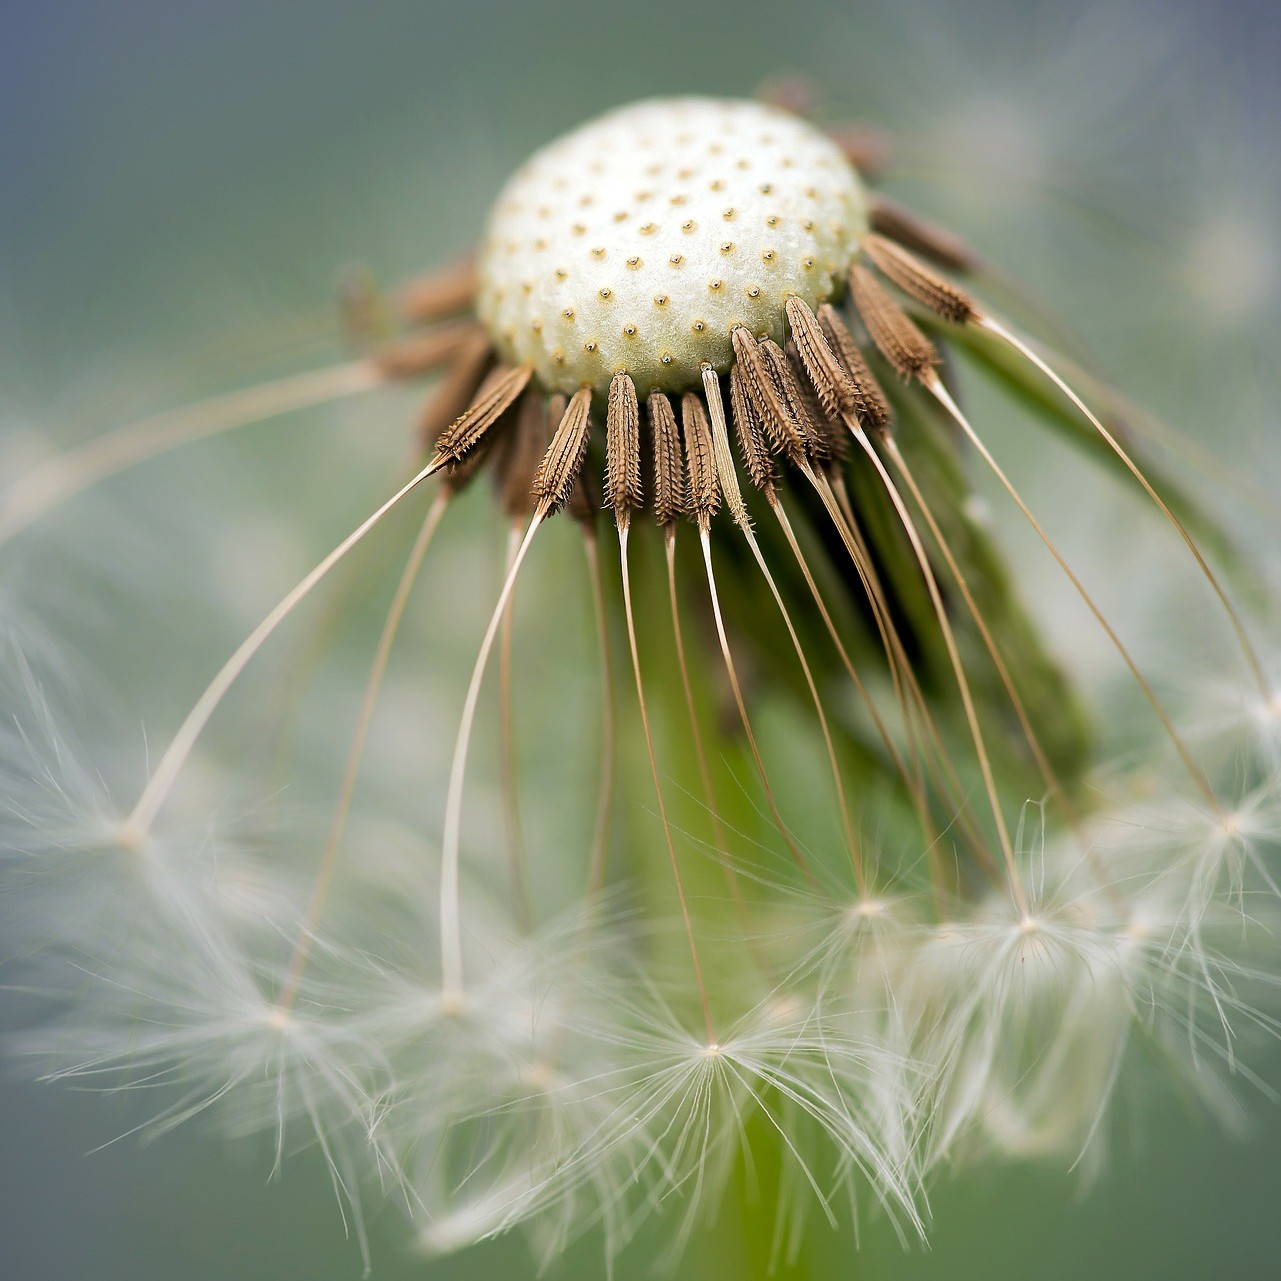 common-dandelion-335662_1920